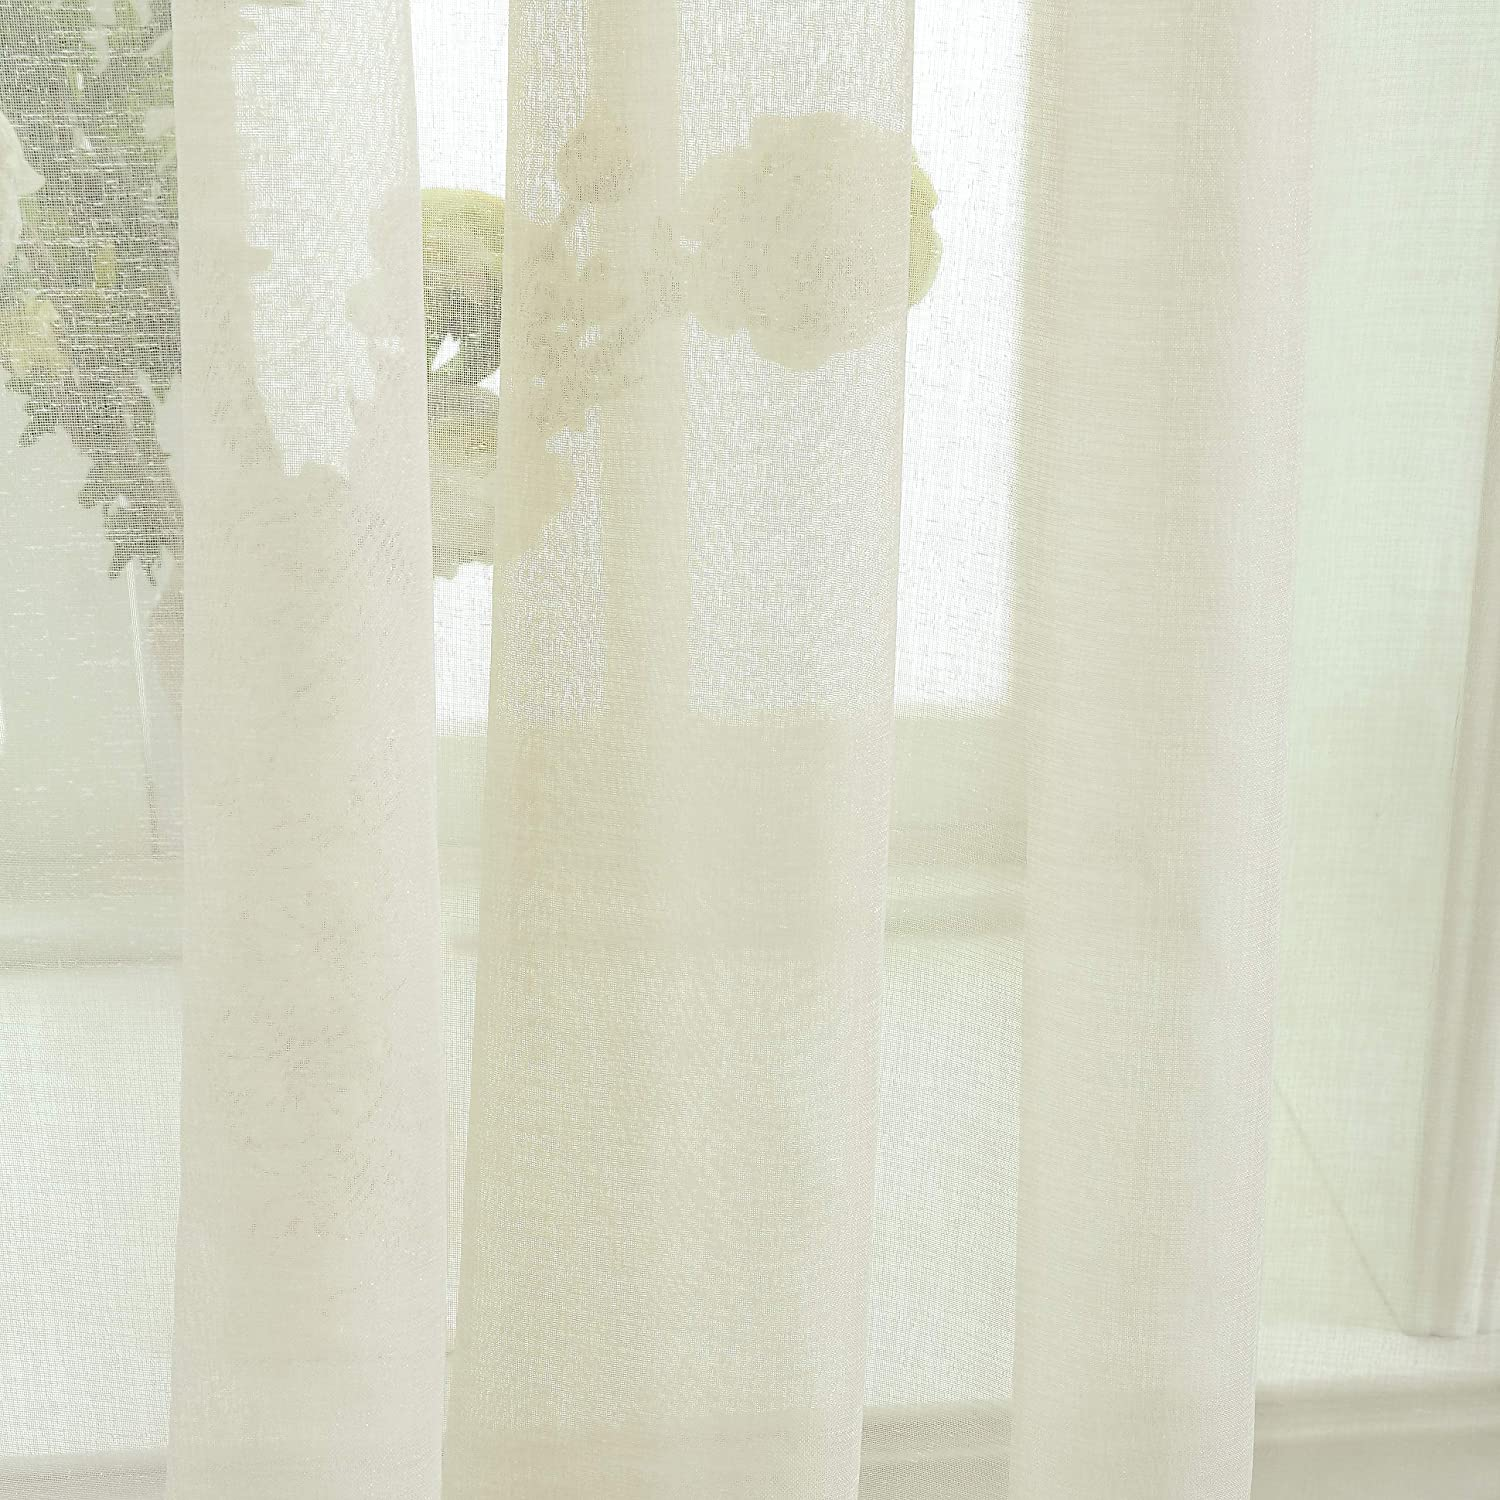 52 x 72 inch, Aqua Selectex Linen Look Pom Pom Tasseled Sheer Curtains Rod Pocket Voile Semi-Sheer Curtains for Living and Bedroom Set of 2 Curtain Panels